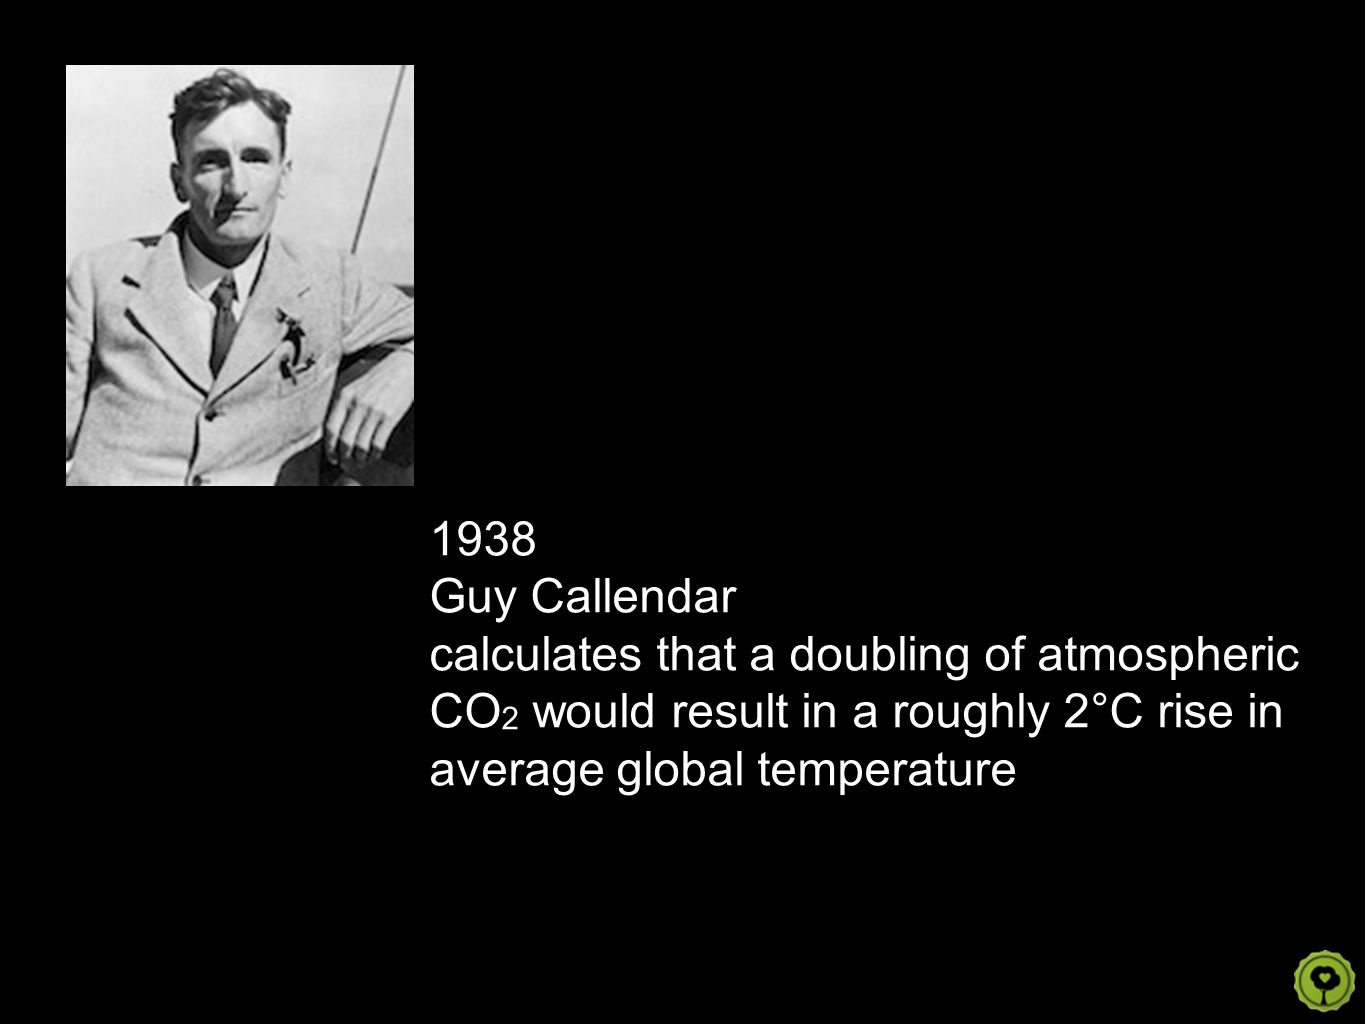 1938 Guy Callendar calculates that a doubling of atmospheric CO 2 would result in a roughly 2°C rise in average global temperature